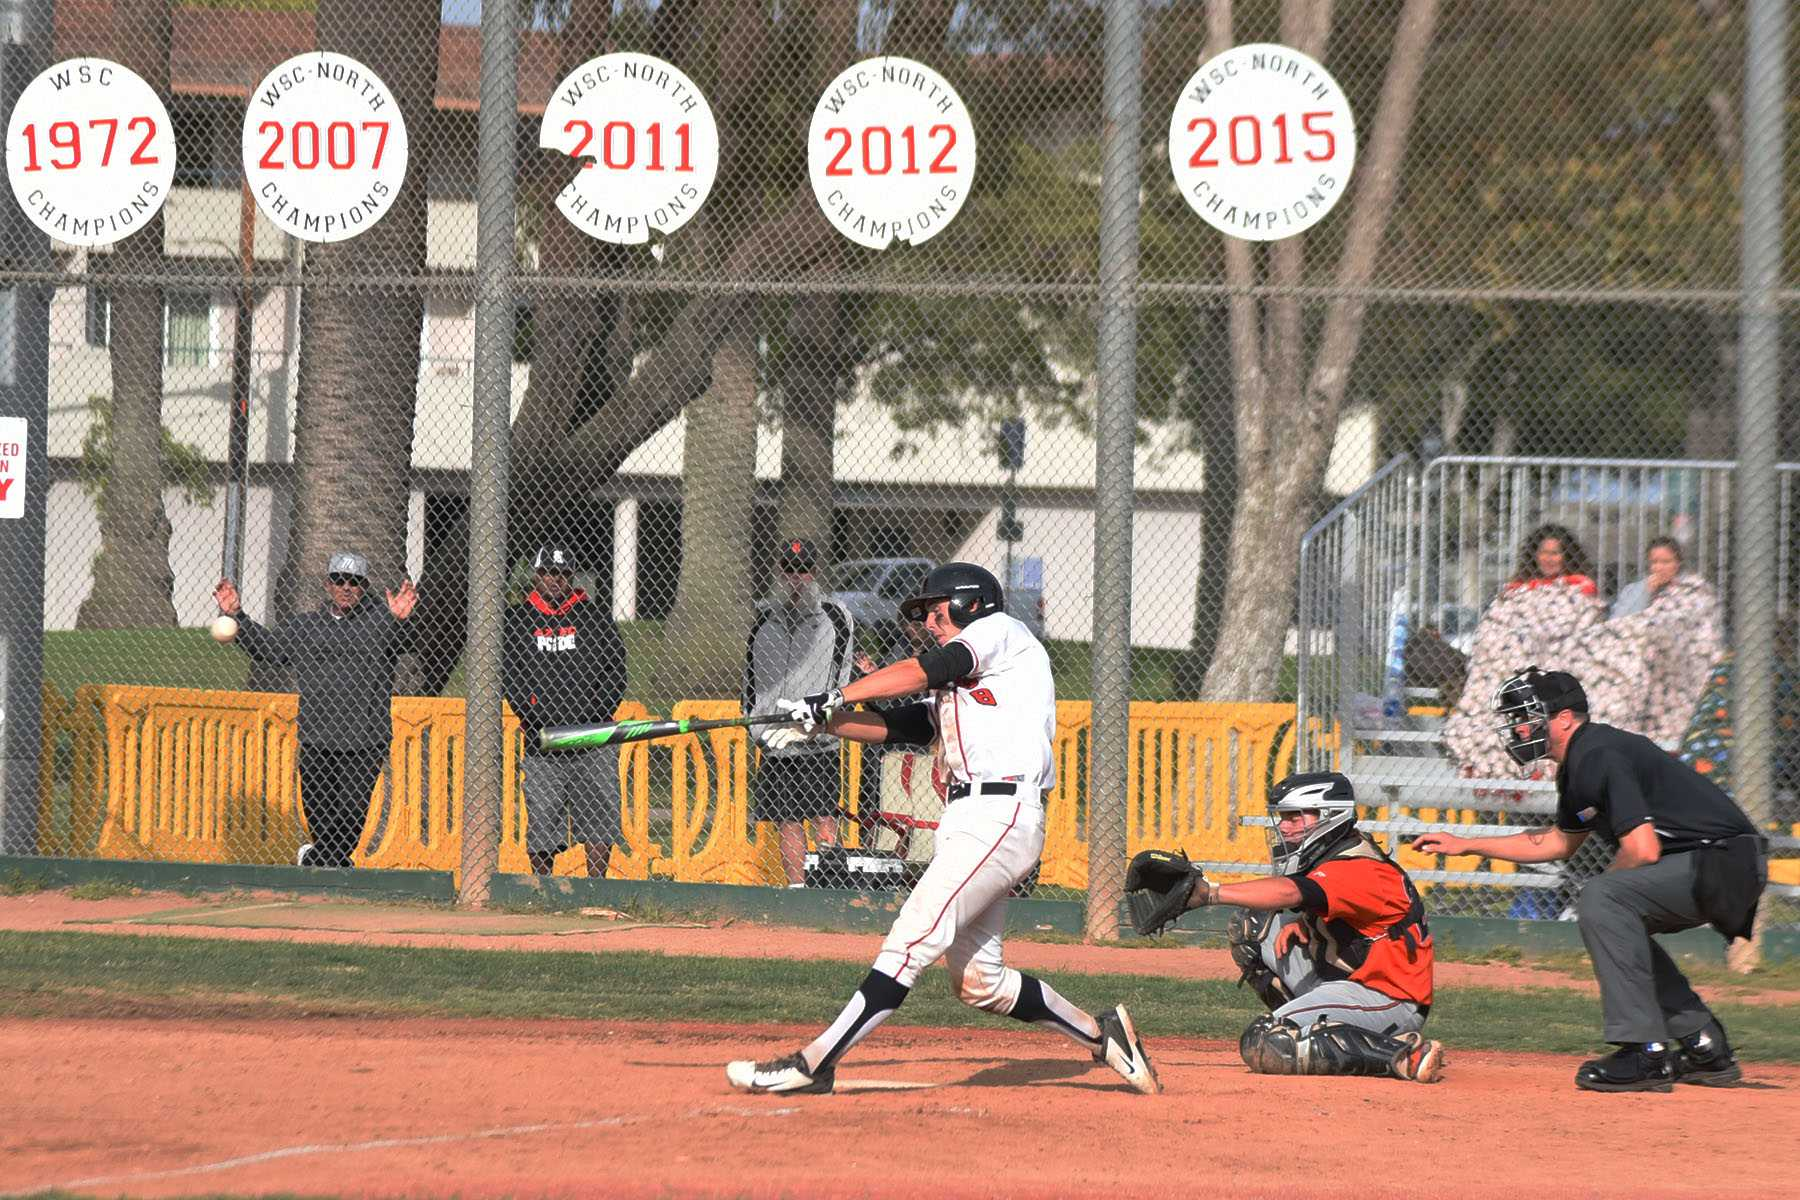 Vaquero sophomore catcher Andrew Cosgrove hits an RBI double in the bottom of the ninth inning to come within one run of Riverside City College in the wildcard playoff game on Tuesday, May 3, at Pershing Park in Santa Barbara. The Vaqueros could not keep the momentum going and lost 3-2.